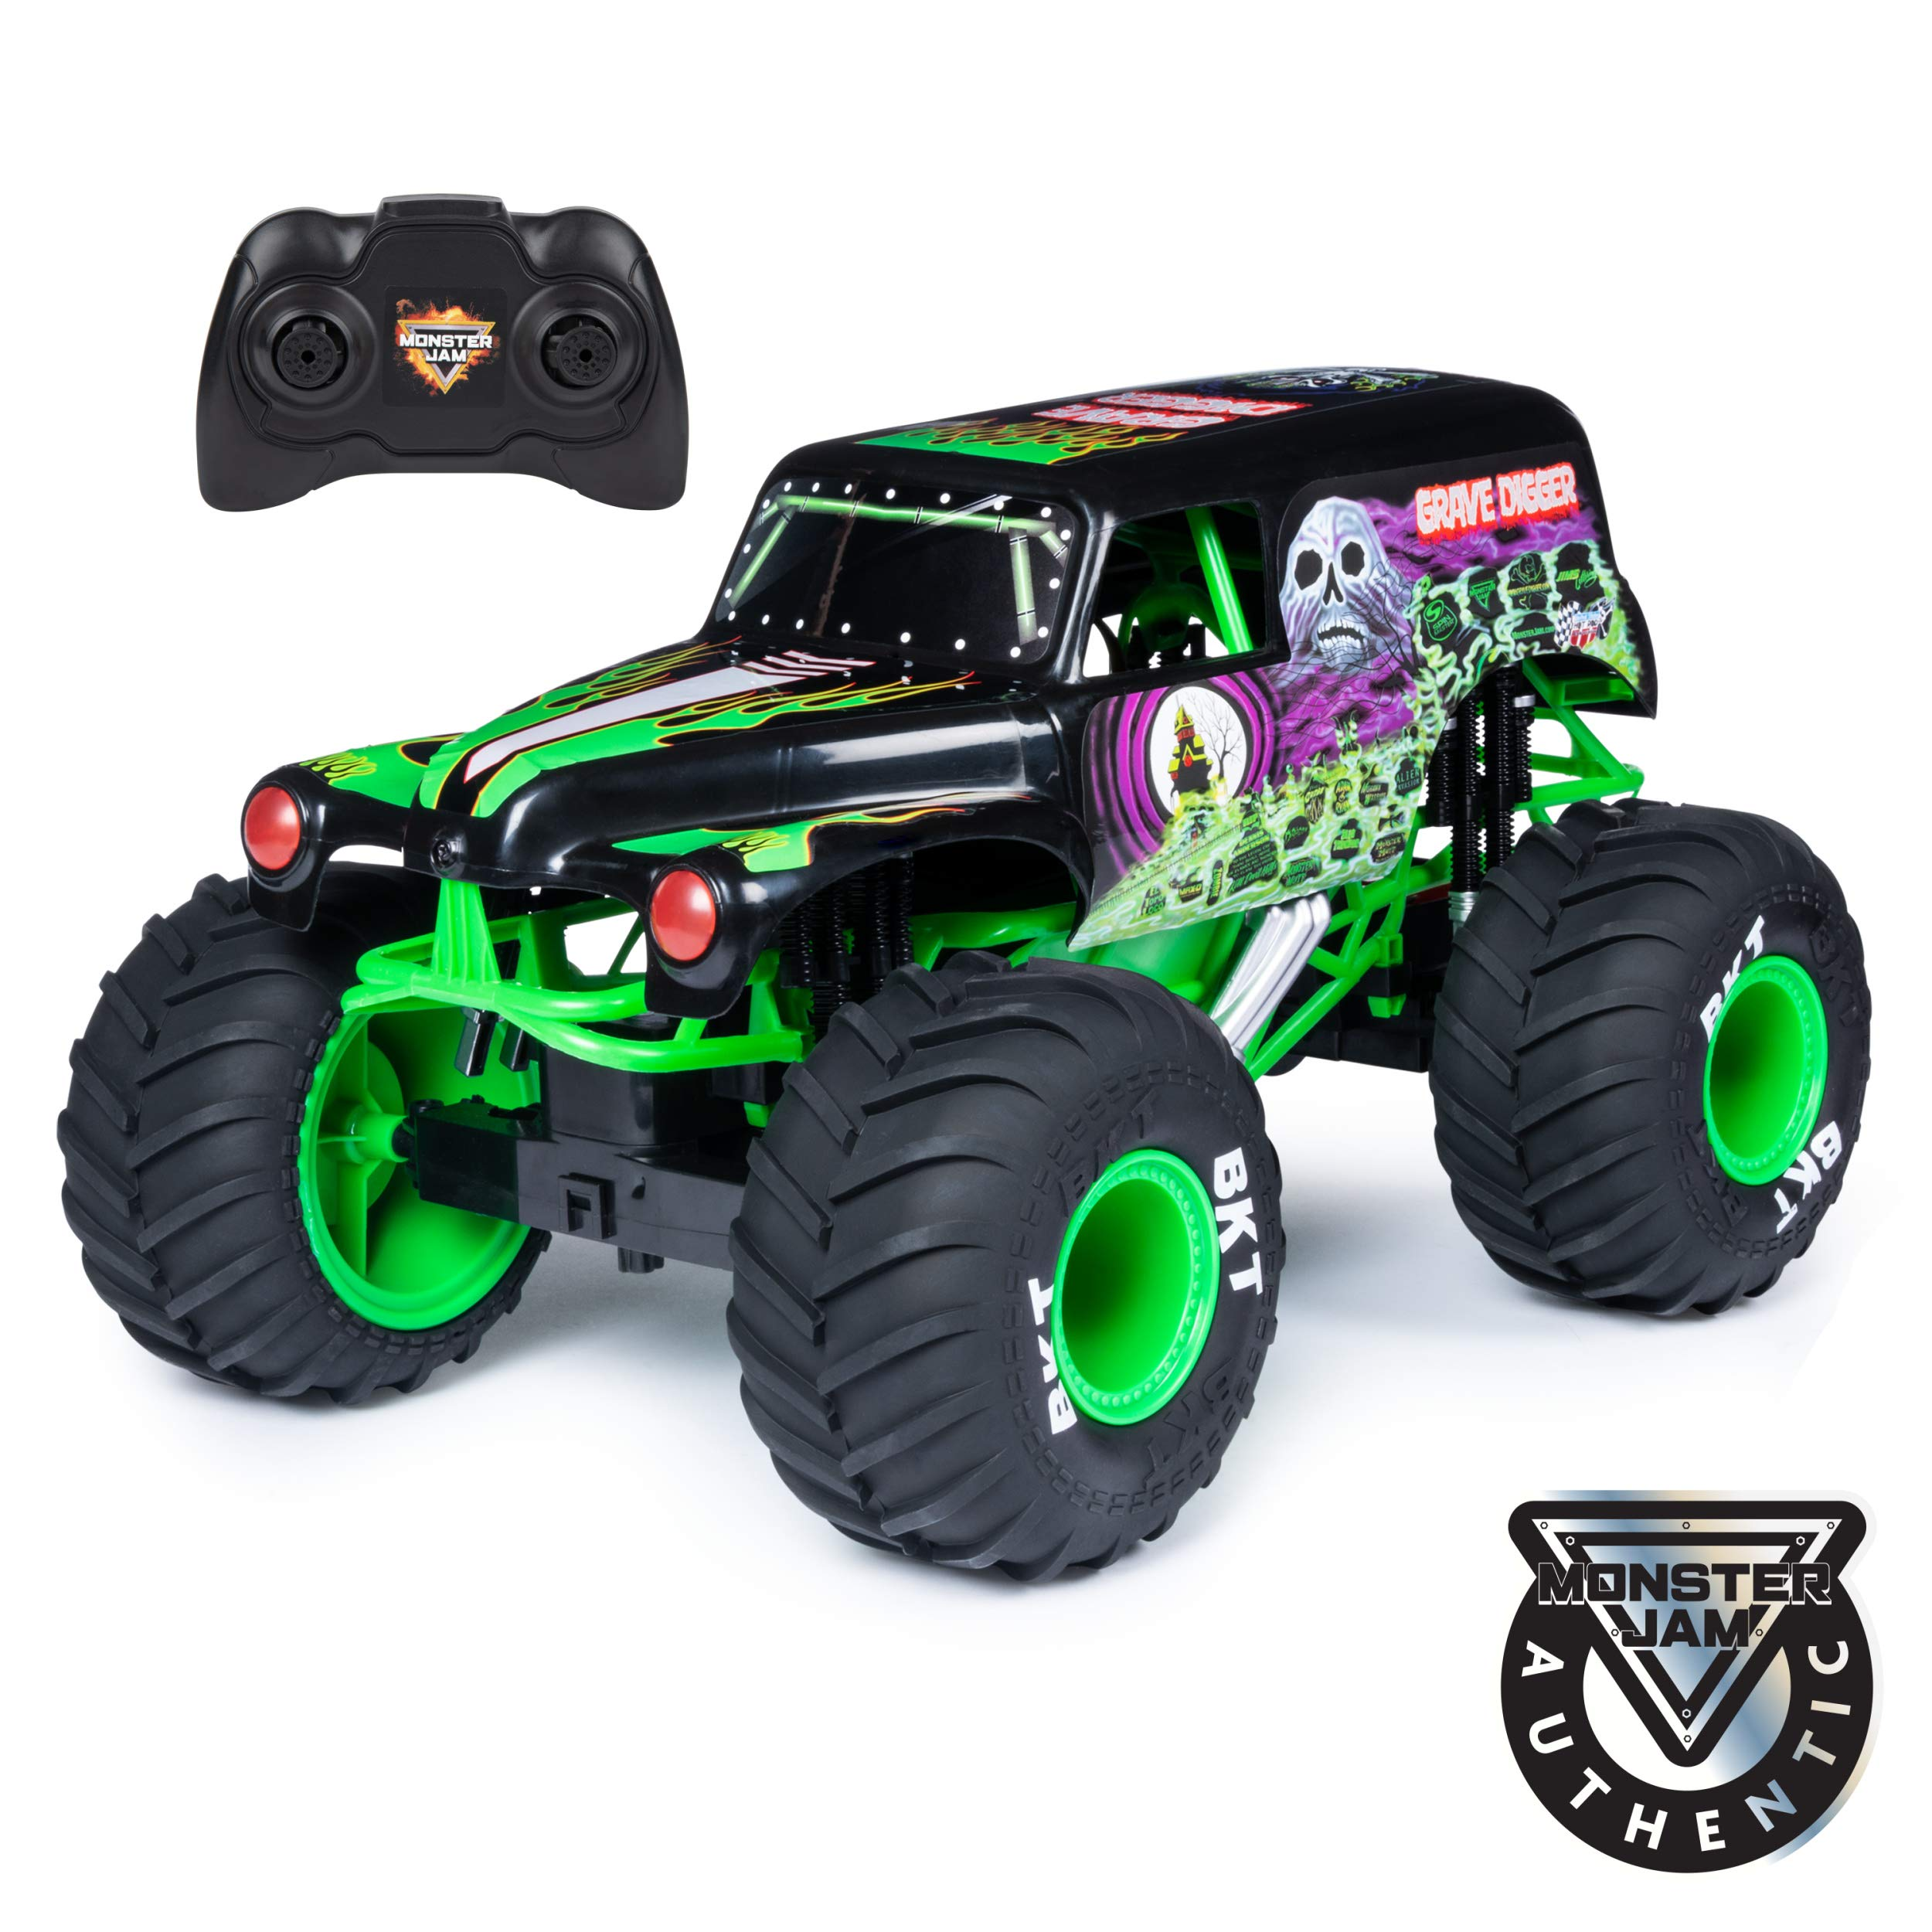 Monster Jam Official Grave Digger Rc Truck 1: 10 Scale with Lights & Sounds For Ages 4 & Up by Monster Jam (Image #1)